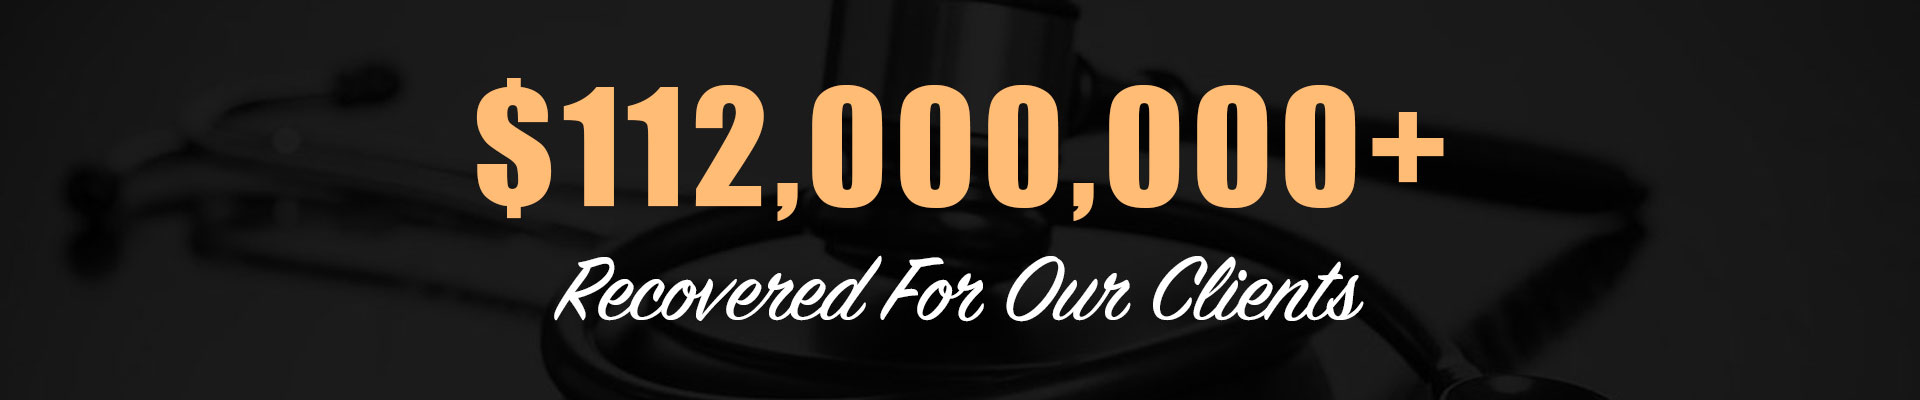 Over $112,000,000 Recovered For Clients By Our Phoenix Personal Injury Lawyers